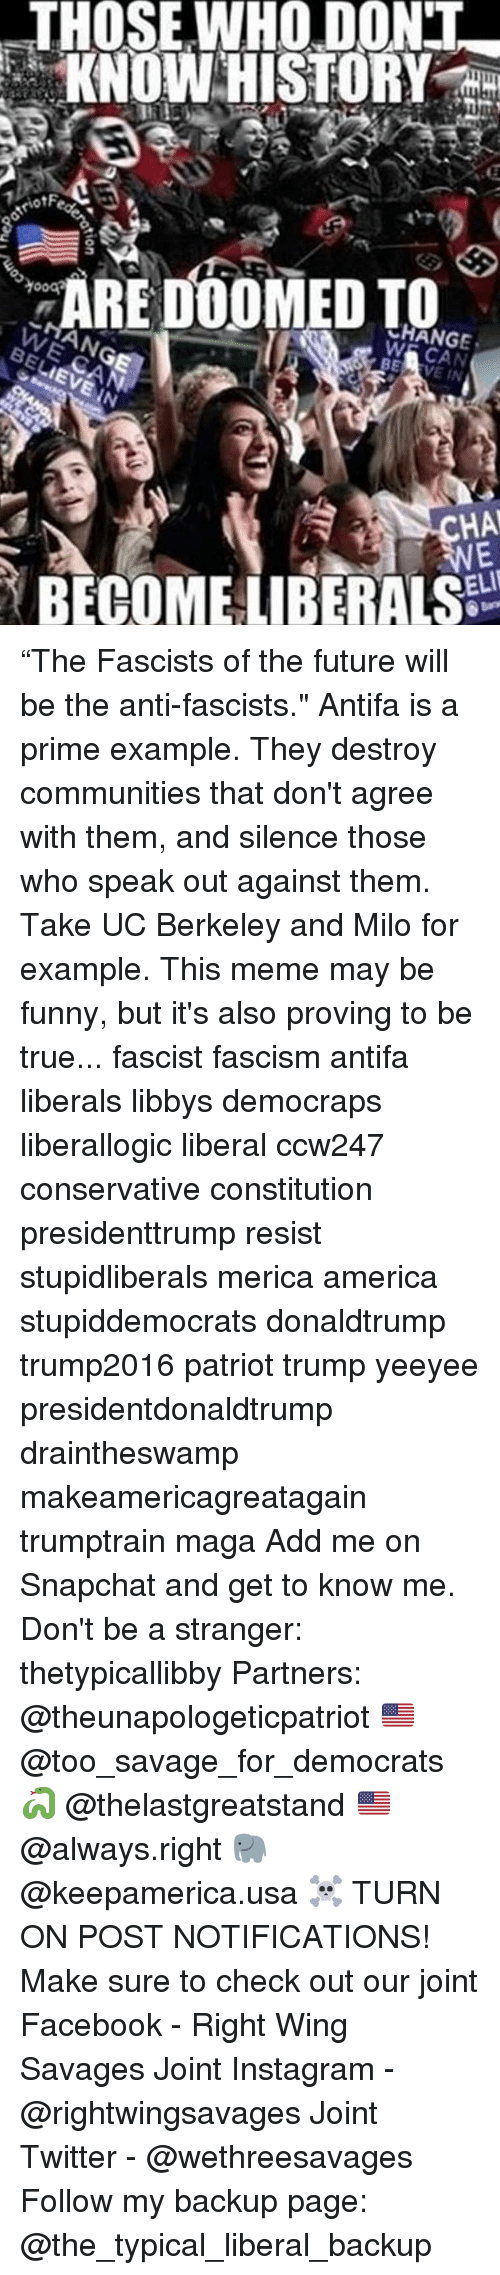 """UC Berkeley, Conservative, and Fascism: THOSE WHO DONT  KNOW HISTORY  ARE DOOMED TO  eRANGE  W  BELIEVE IN  WE CAN  ANG  HA  BECOME LIBERALS  gion """"The Fascists of the future will be the anti-fascists."""" Antifa is a prime example. They destroy communities that don't agree with them, and silence those who speak out against them. Take UC Berkeley and Milo for example. This meme may be funny, but it's also proving to be true... fascist fascism antifa liberals libbys democraps liberallogic liberal ccw247 conservative constitution presidenttrump resist stupidliberals merica america stupiddemocrats donaldtrump trump2016 patriot trump yeeyee presidentdonaldtrump draintheswamp makeamericagreatagain trumptrain maga Add me on Snapchat and get to know me. Don't be a stranger: thetypicallibby Partners: @theunapologeticpatriot 🇺🇸 @too_savage_for_democrats 🐍 @thelastgreatstand 🇺🇸 @always.right 🐘 @keepamerica.usa ☠️ TURN ON POST NOTIFICATIONS! Make sure to check out our joint Facebook - Right Wing Savages Joint Instagram - @rightwingsavages Joint Twitter - @wethreesavages Follow my backup page: @the_typical_liberal_backup"""